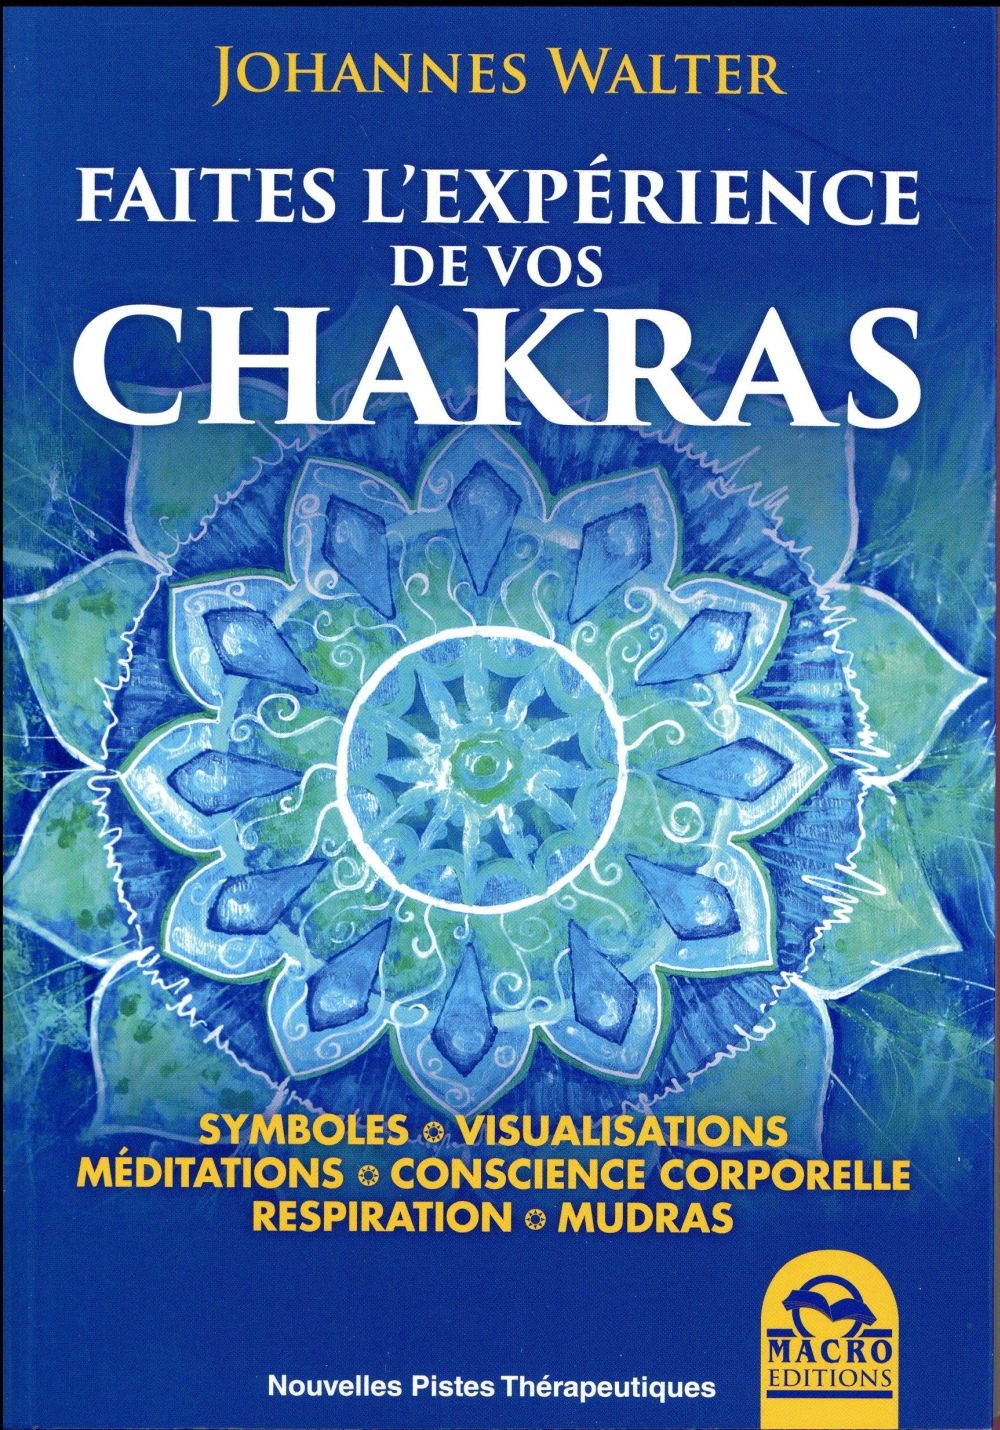 FAITES L'EXPERIENCE DE VOS CHAKRAS - SYMBOLES. VISUALISATION. MEDITATIONS. CONSCIENCE CORPORELLE. RE